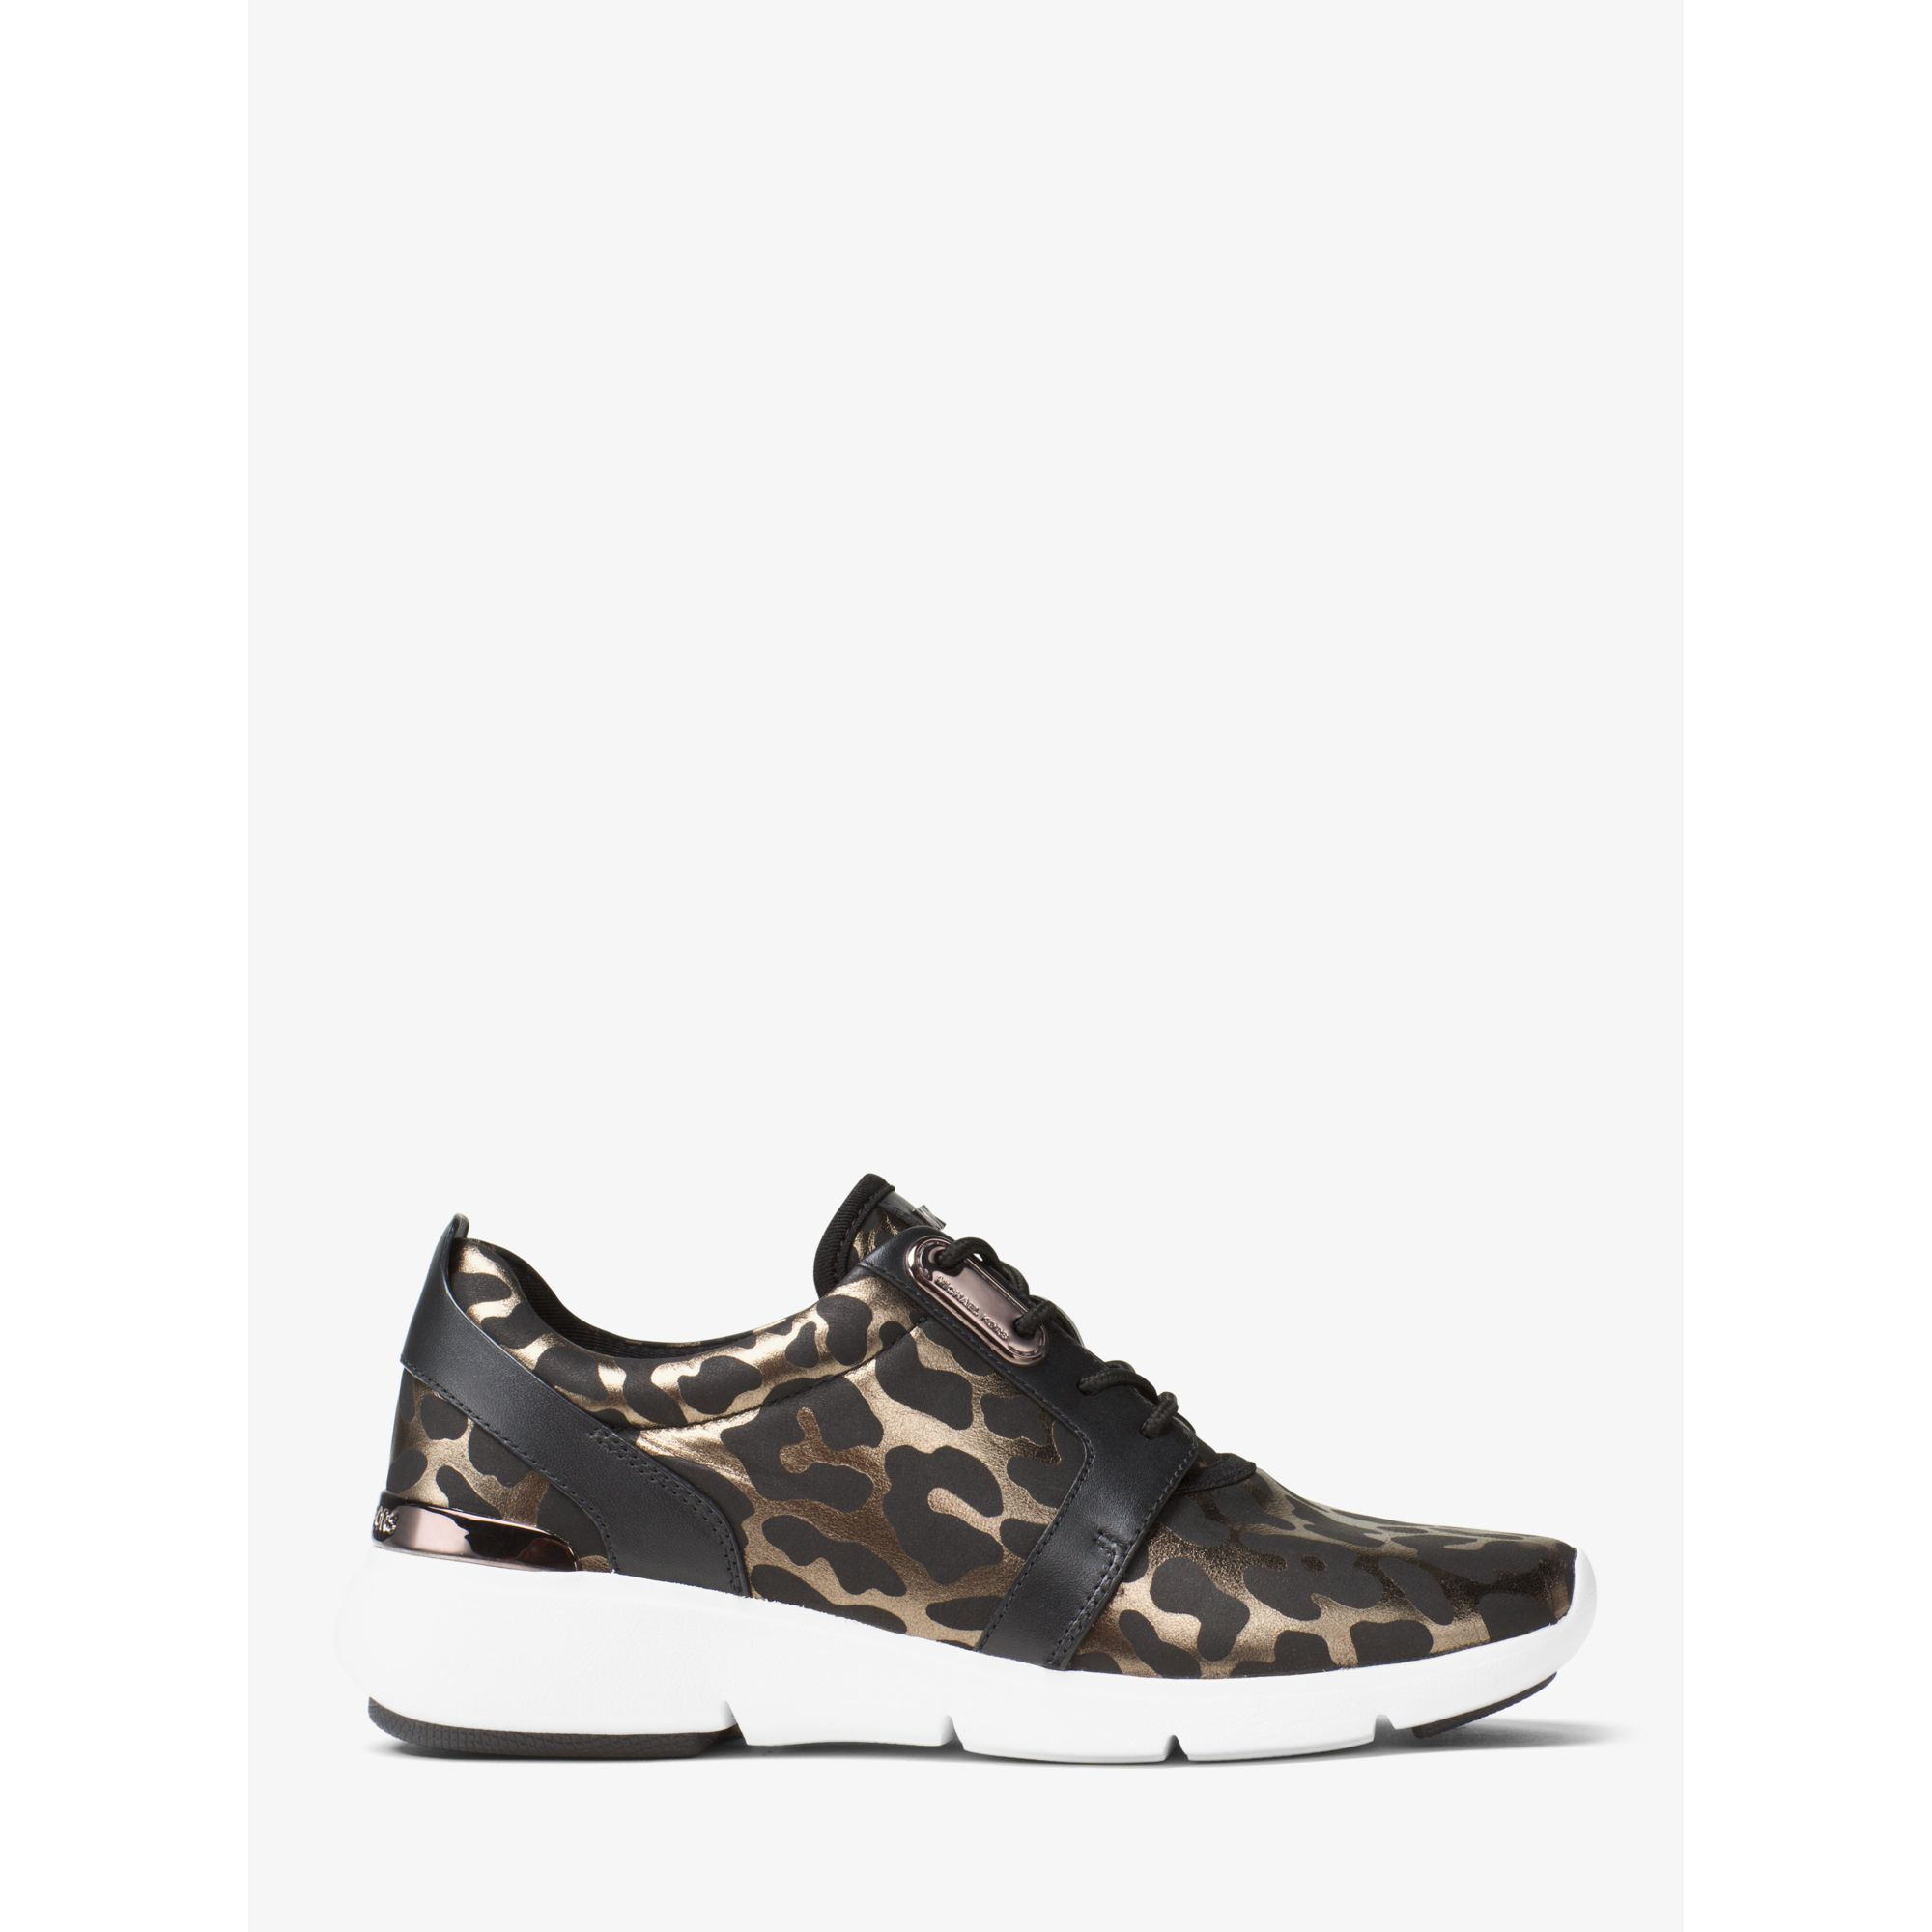 michael kors amanda animal print low top sneakers in black lyst. Black Bedroom Furniture Sets. Home Design Ideas